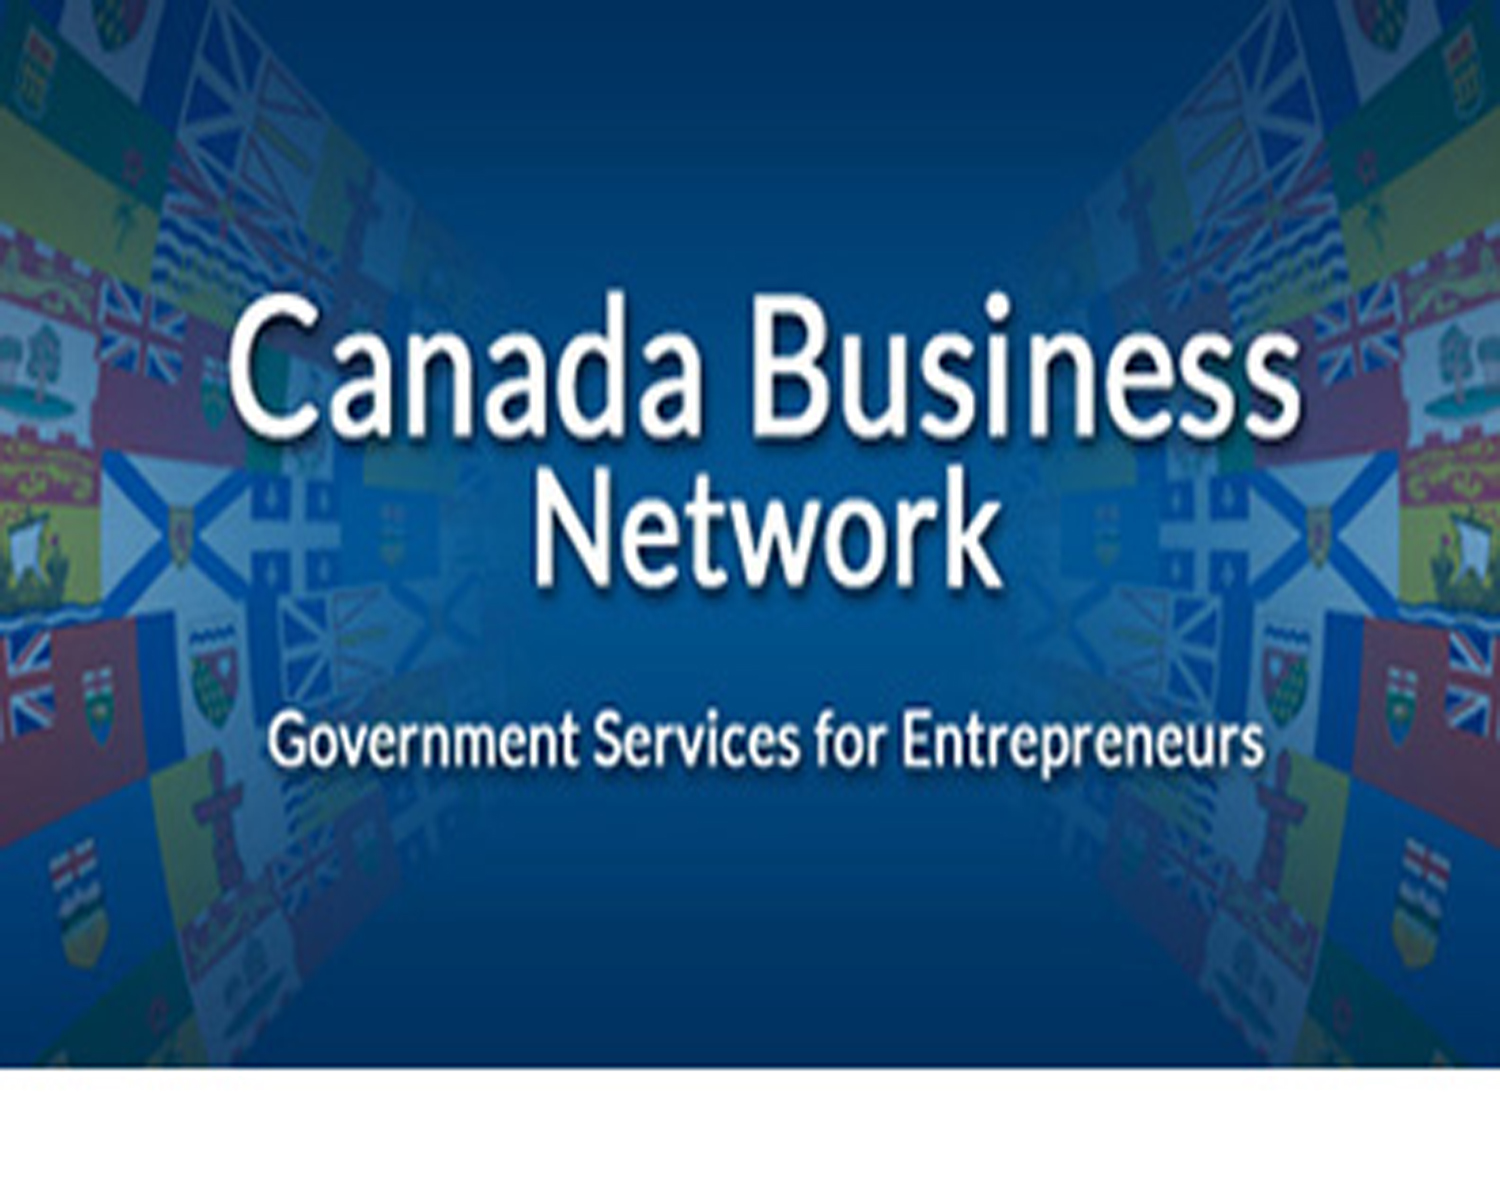 Immigrant Get Finance to Start New Business in Canada